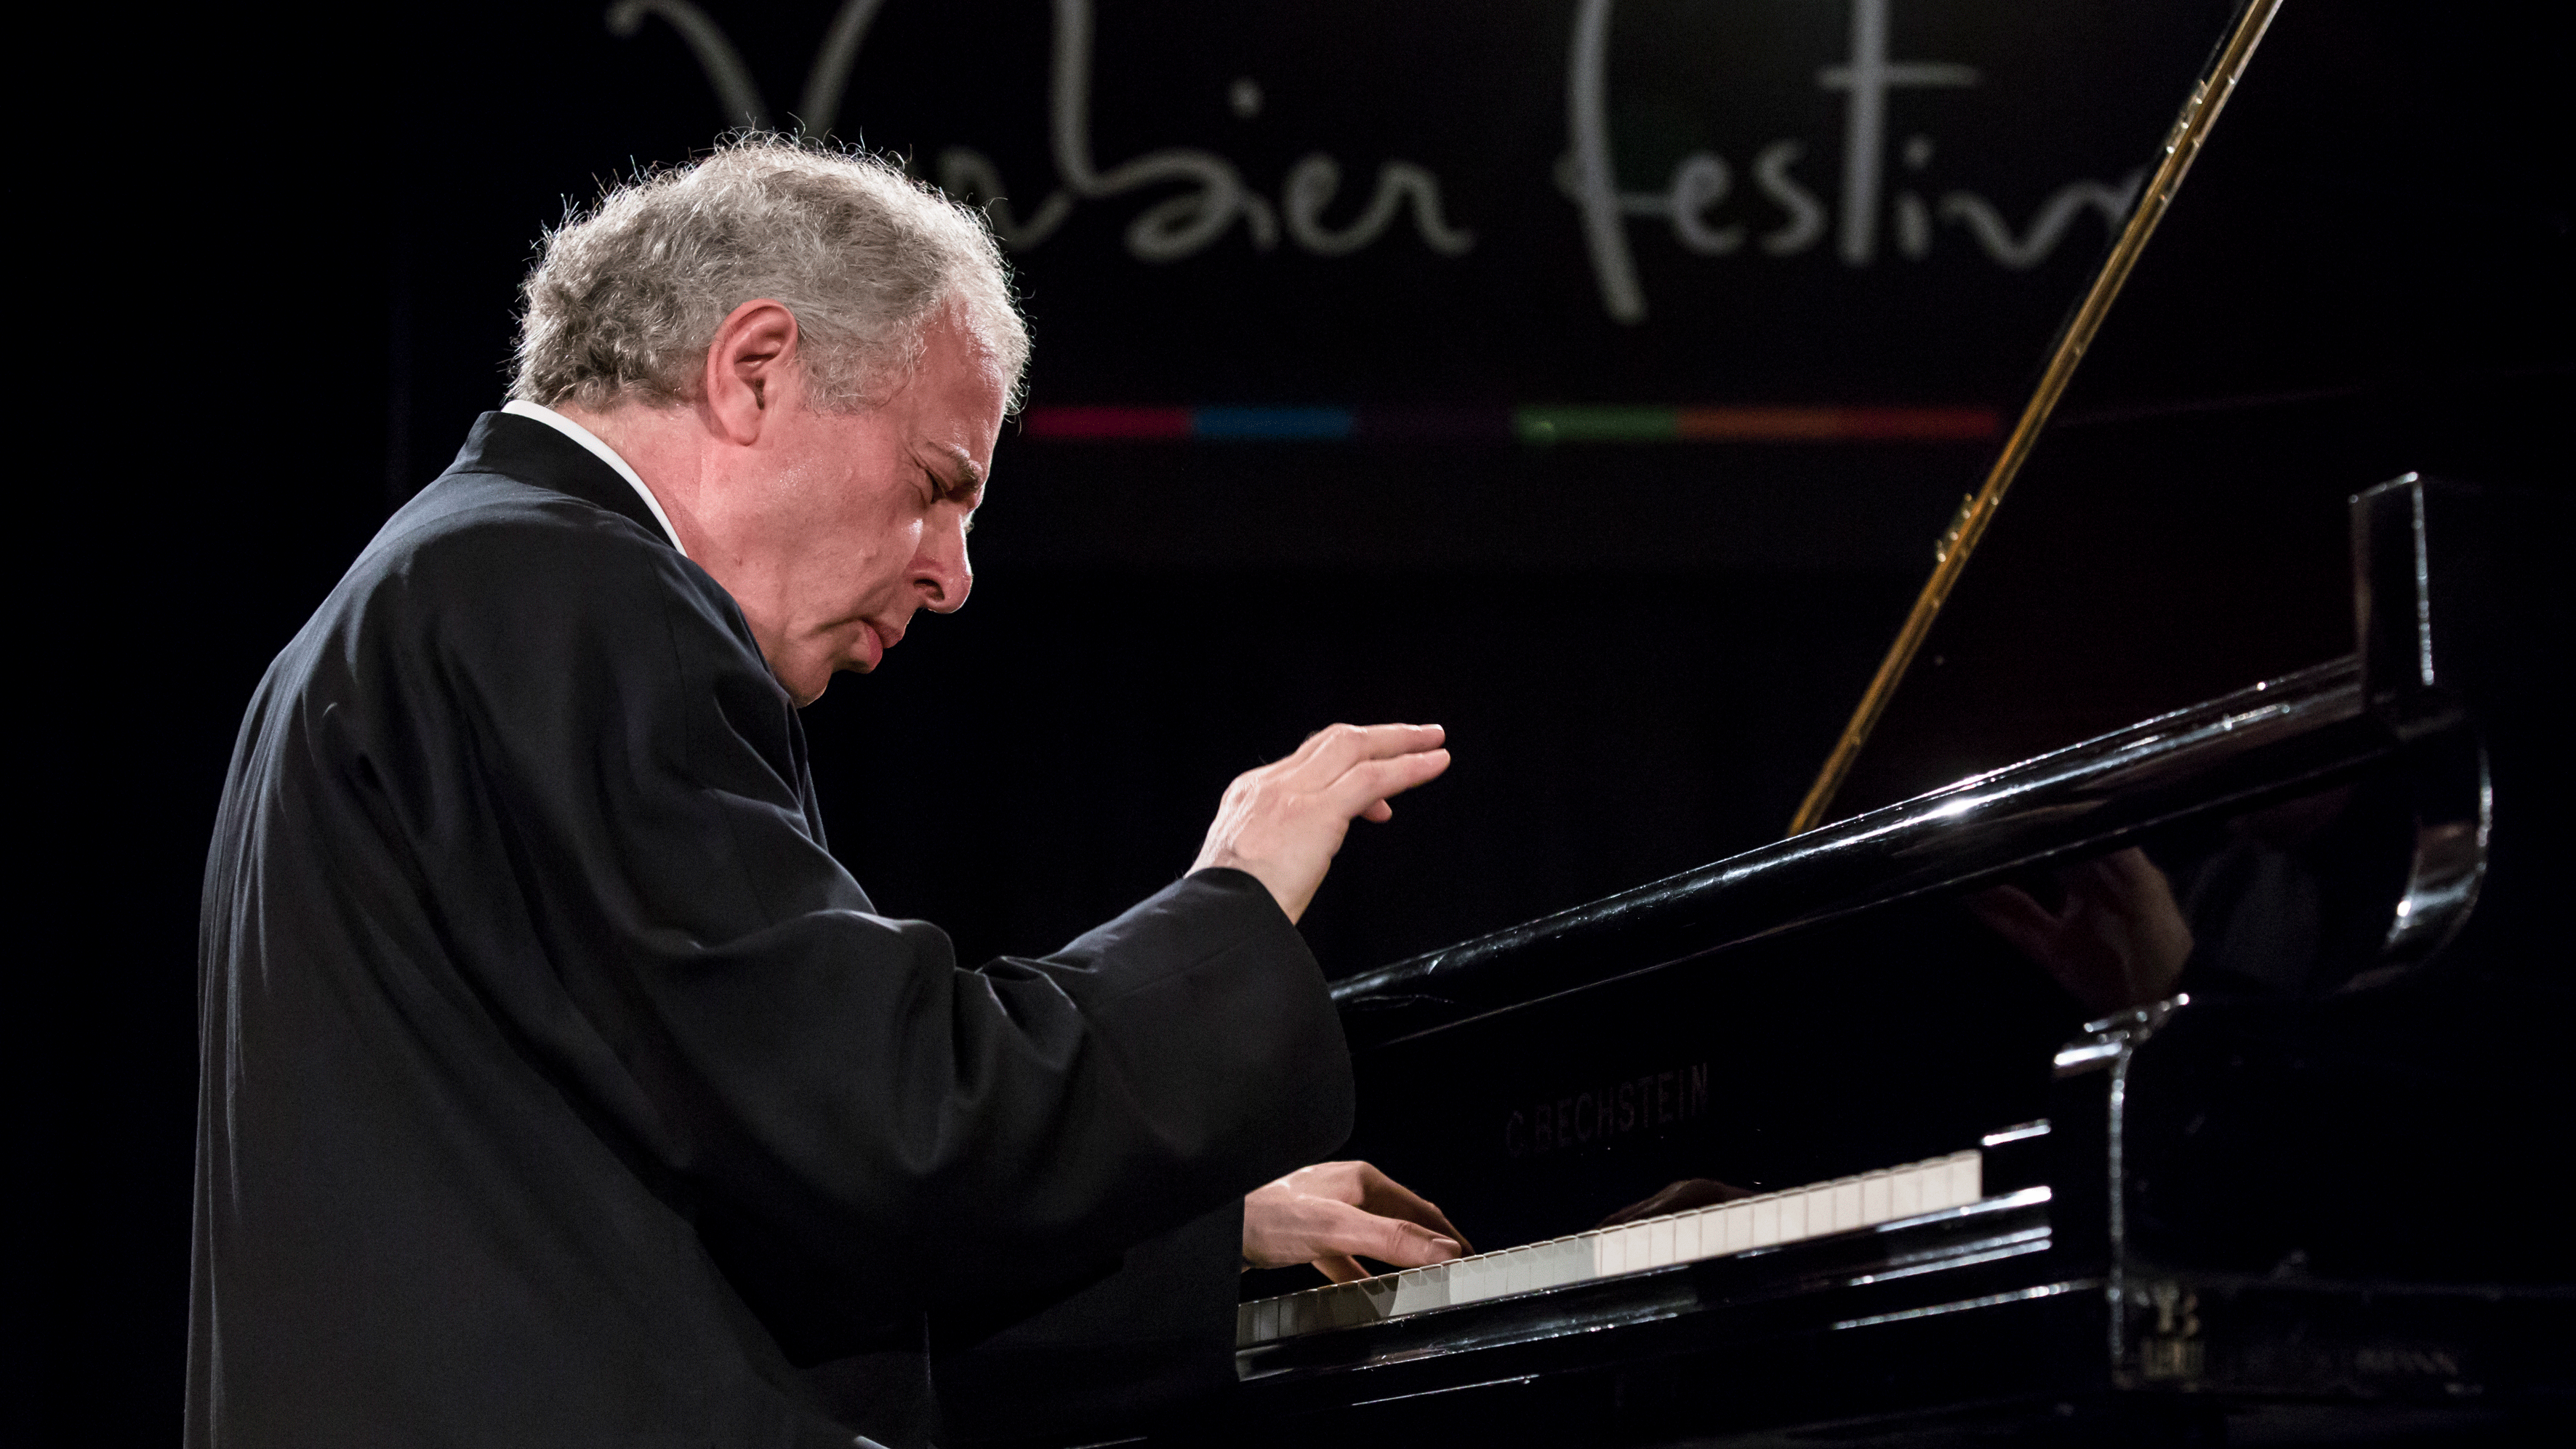 Sir András Schiff plays Haydn and Beethoven